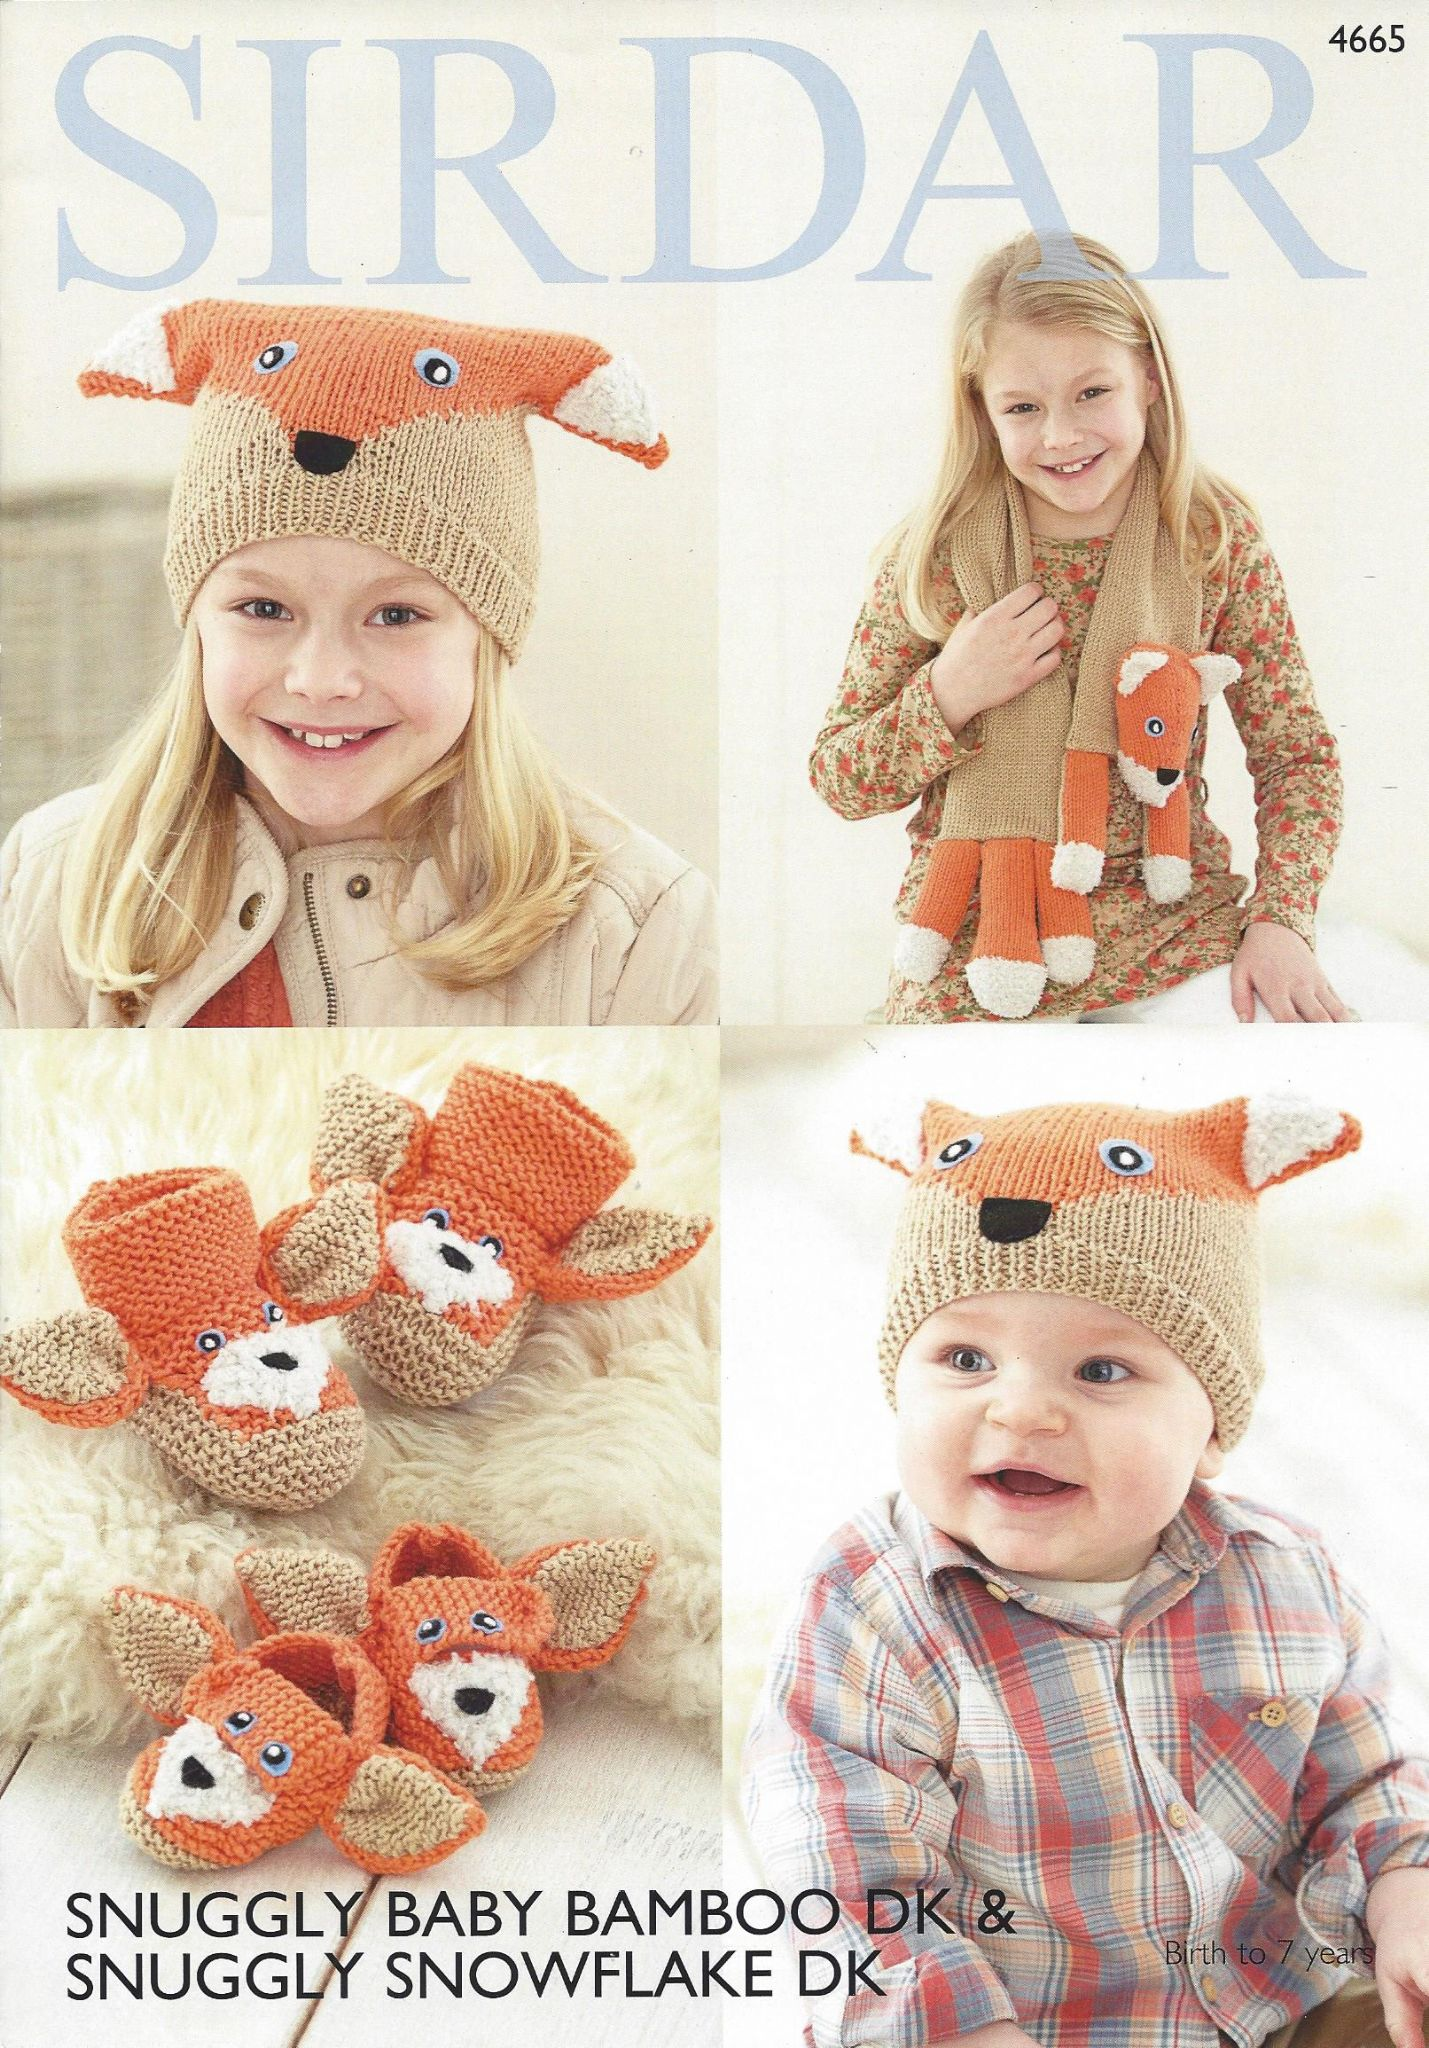 Sirdar Snuggly Baby Bamboo DK - 4665 Scarf Hat Bootees & Shoes ...